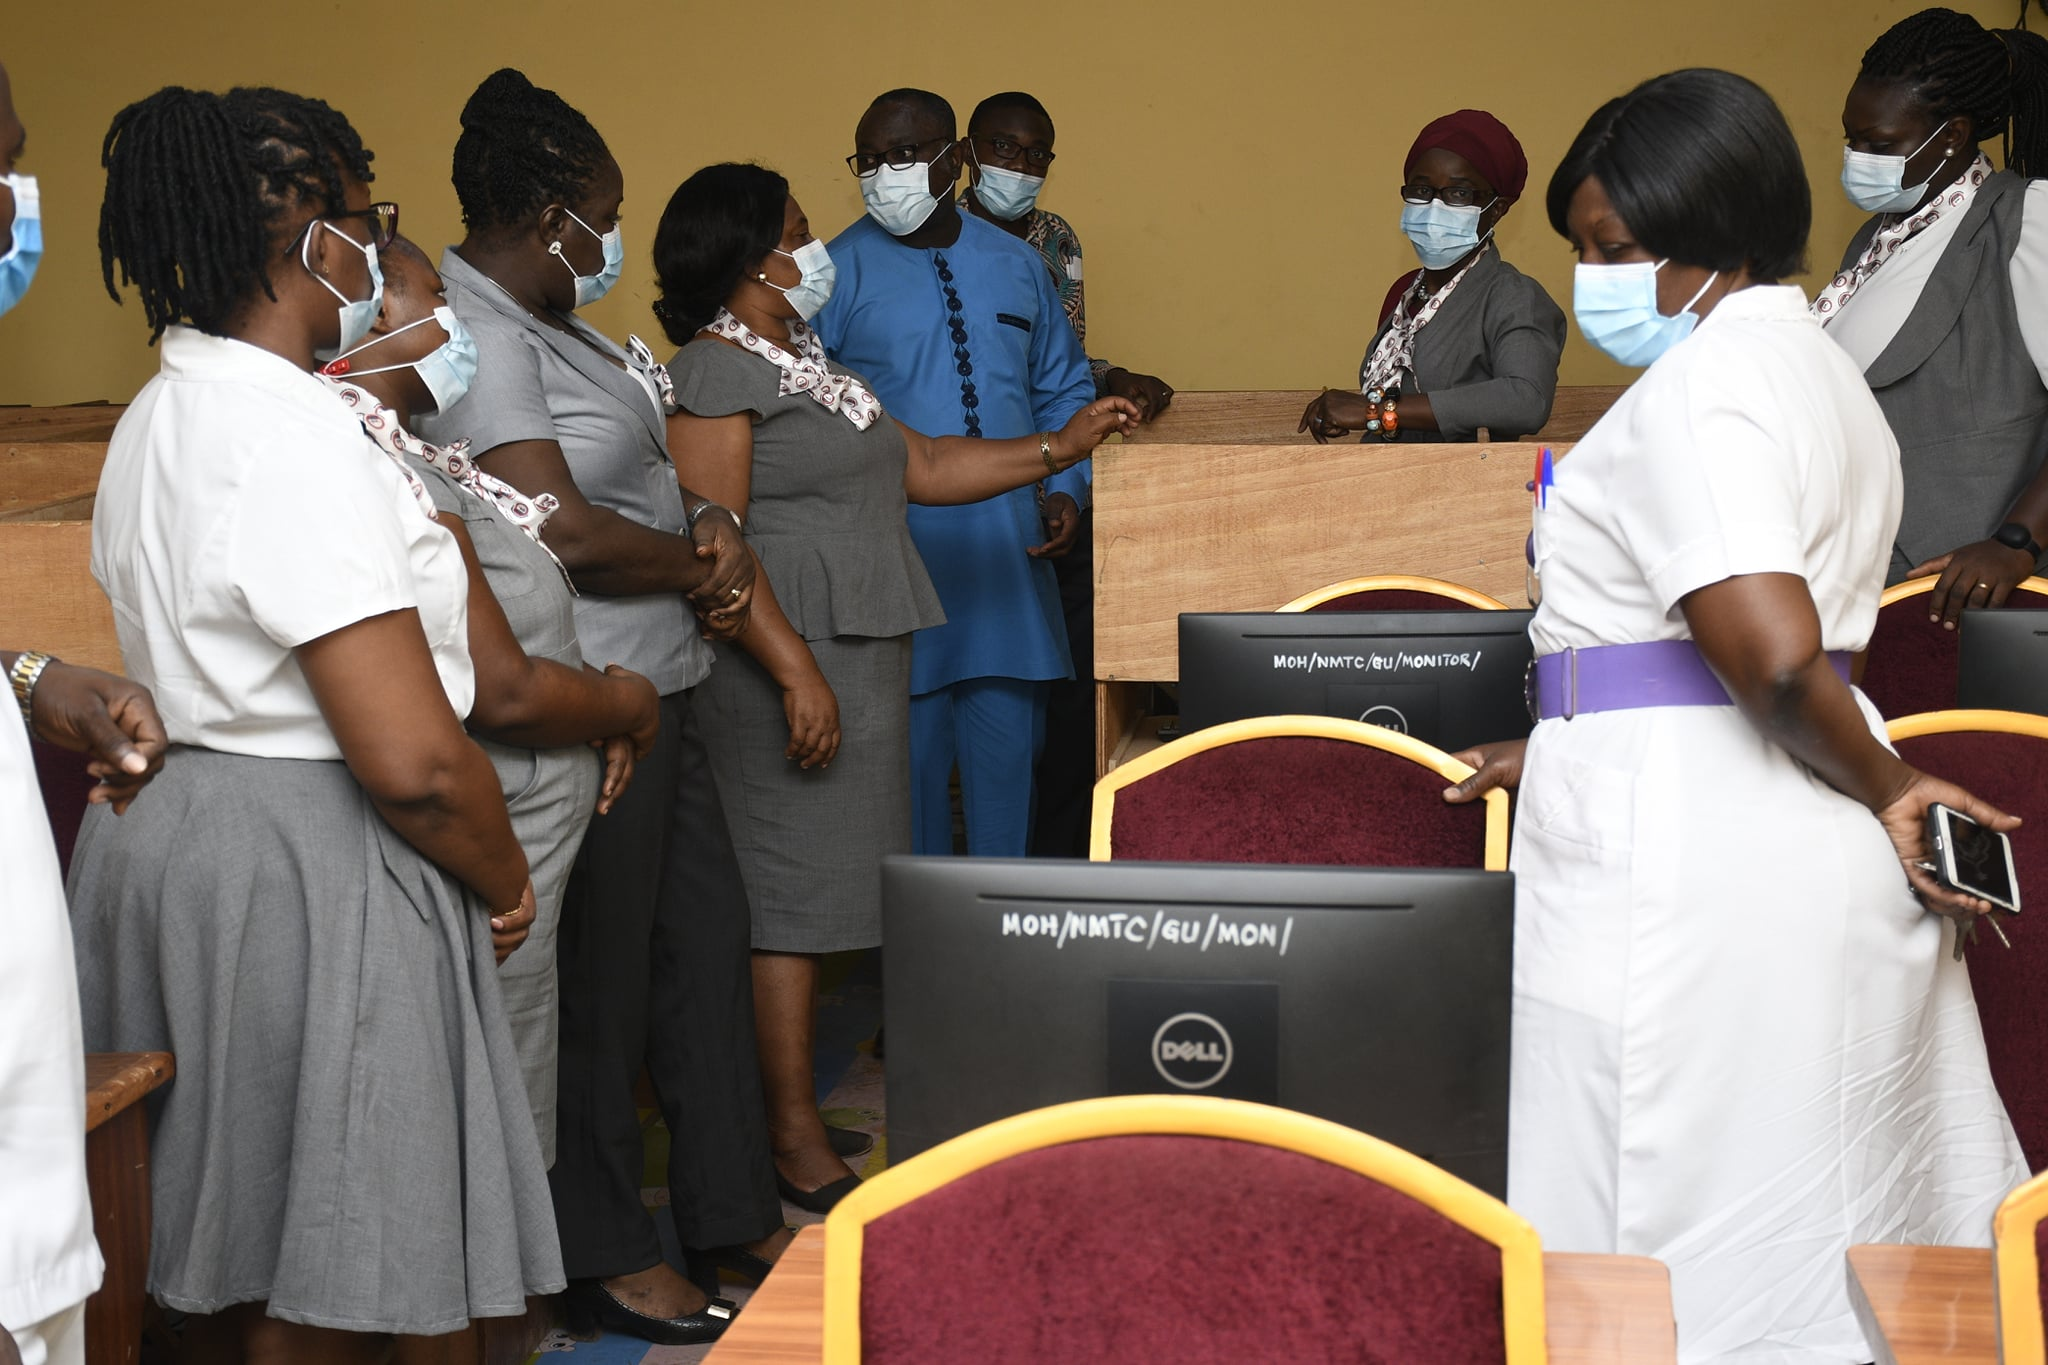 Satellite Campuses for Nurses and Midwives to be established at Yendi, Gushegu 2